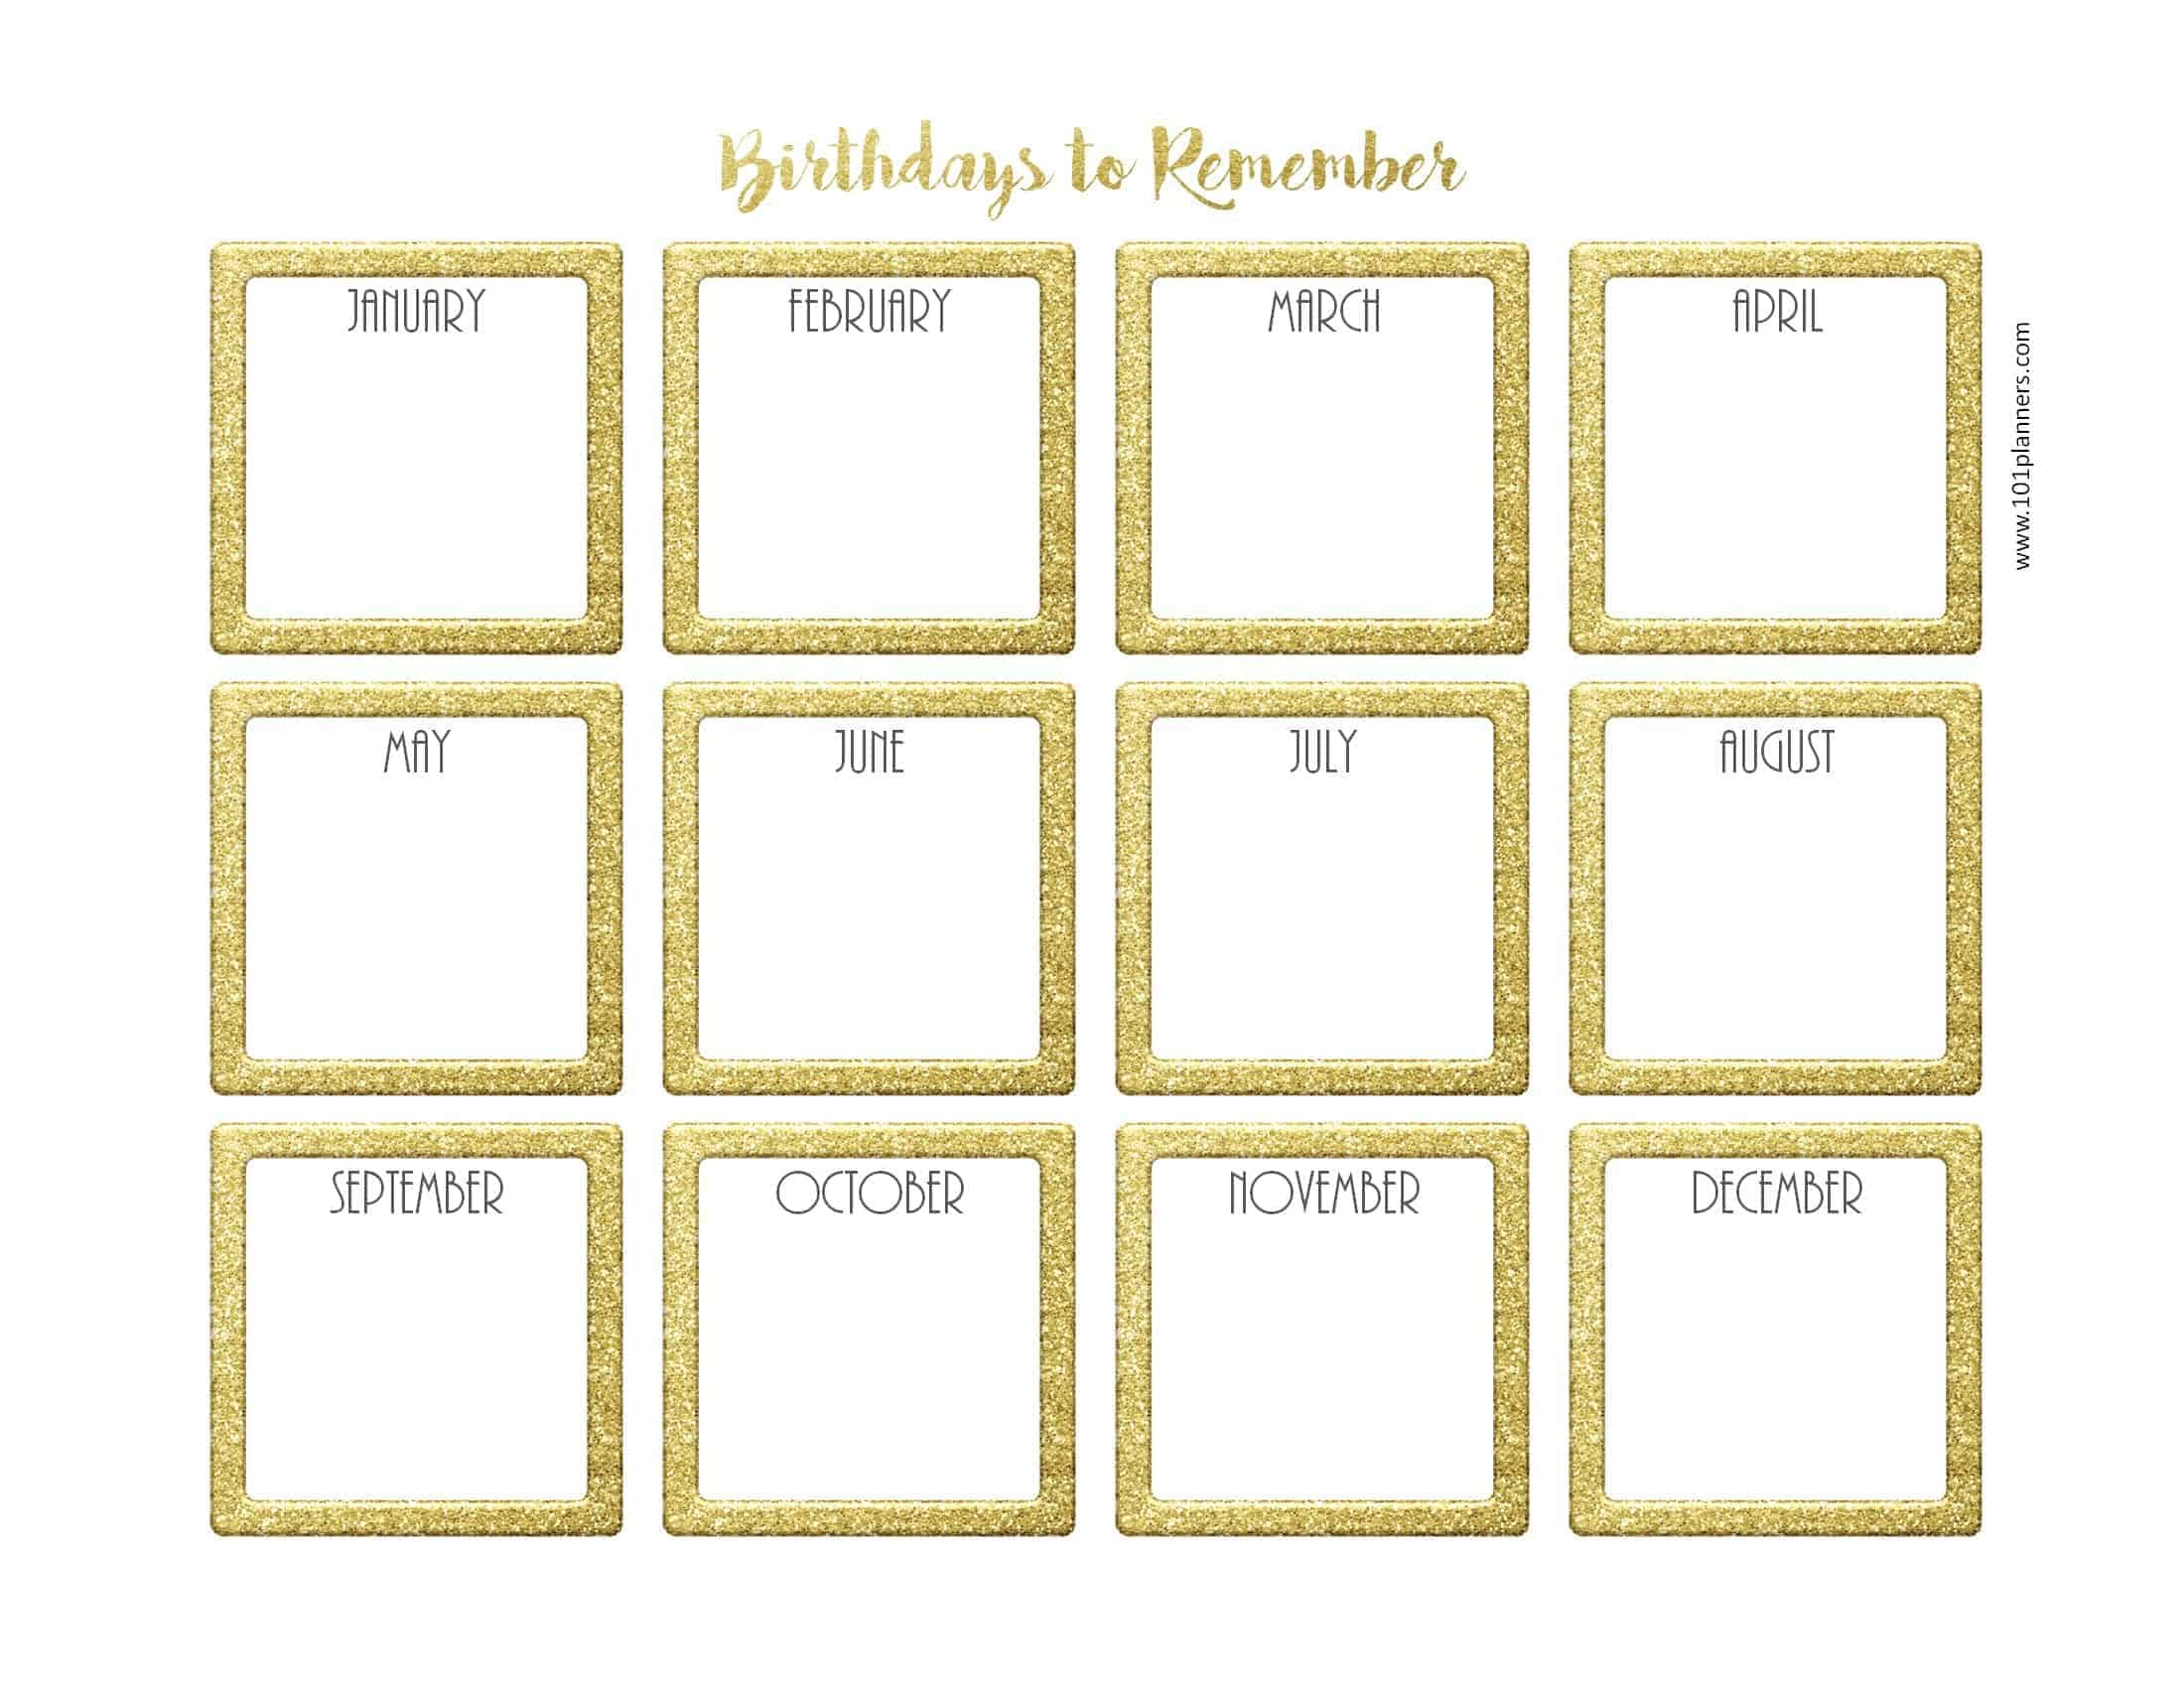 Free birthday calendar gold birthday calendar saigontimesfo